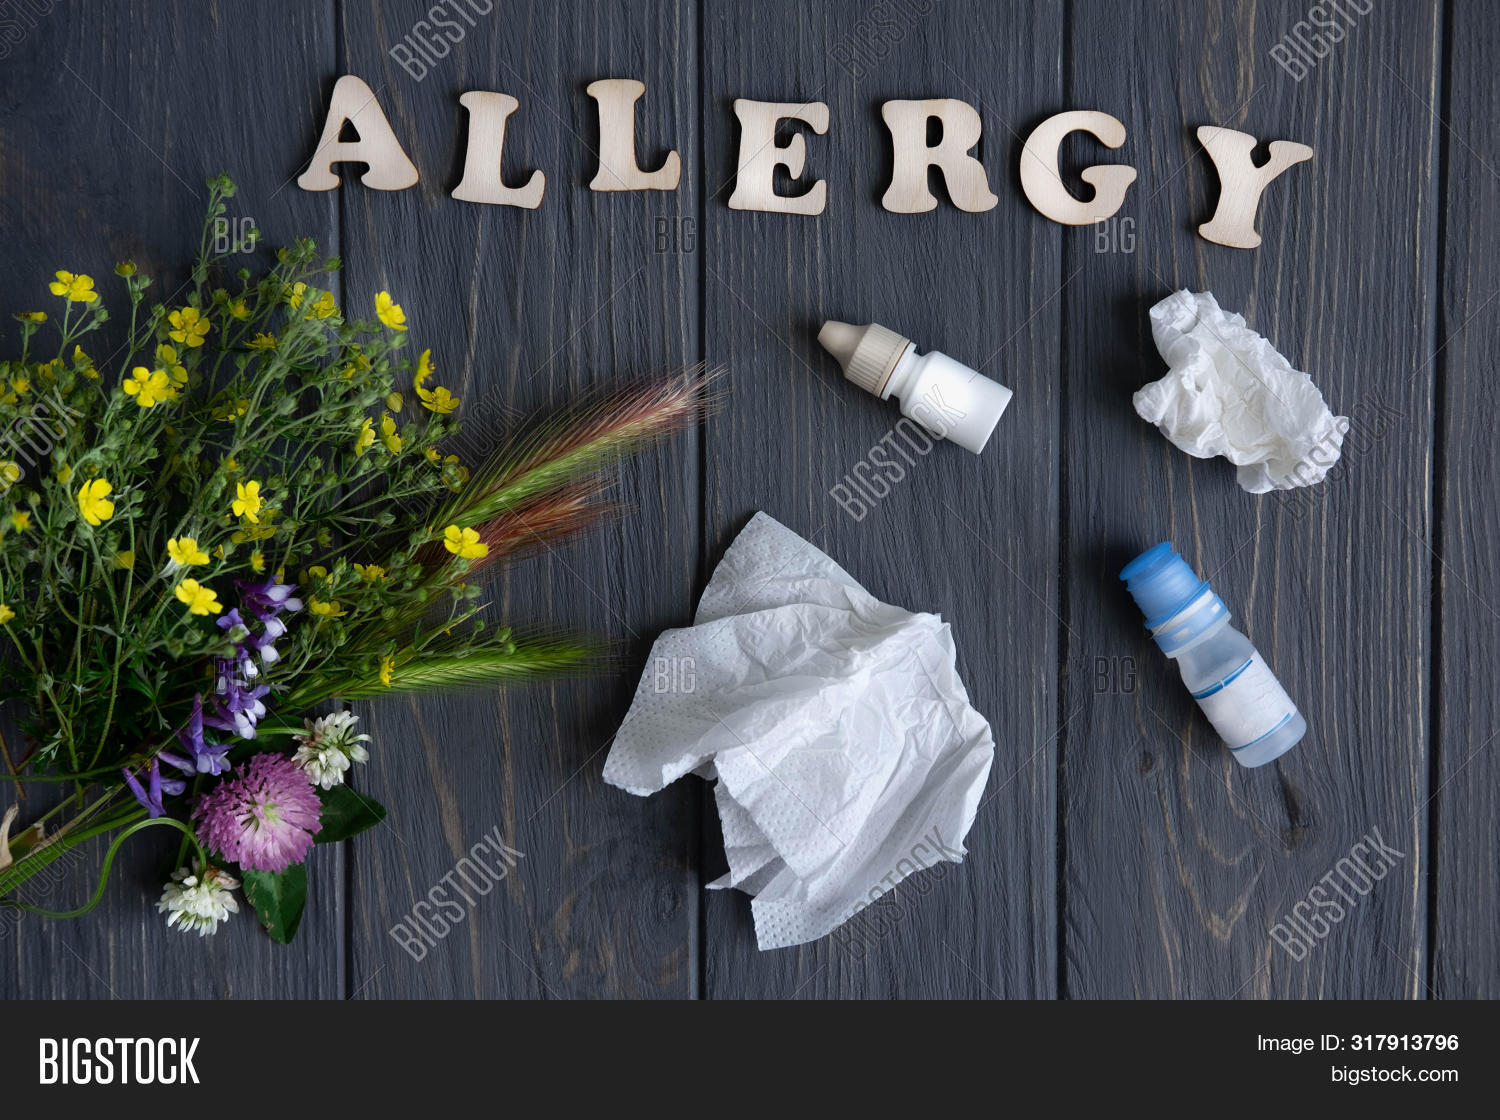 adult,allergens,allergic,allergy,bloom,blowing,cherry,discomfort,disease,face,female,flower,flu,girl,grass,handkerchief,health,illness,immune,immunity,influenza,napkin,nose,outdoor,outside,pollen,reaction,respiratory,rhinitis,season,seasonal,sensitivity,sick,sickness,sneeze,spring,springtime,student,suffering,symptoms,tissue,tree,unwell,virus